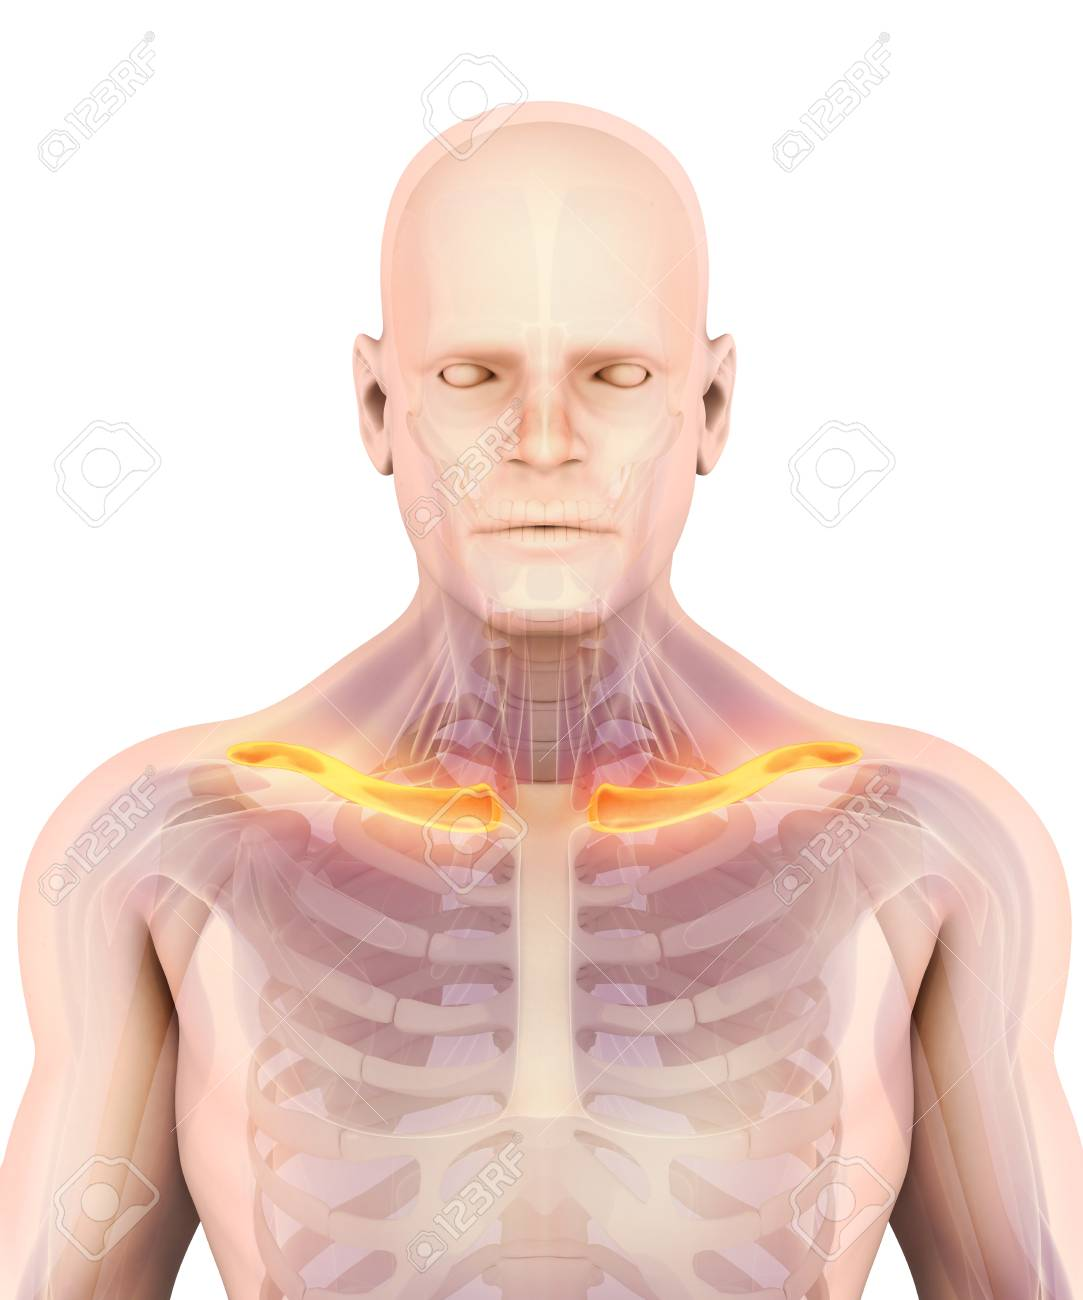 3d Illustration Of Clavicle Part Of Human Skeleton Stock Photo